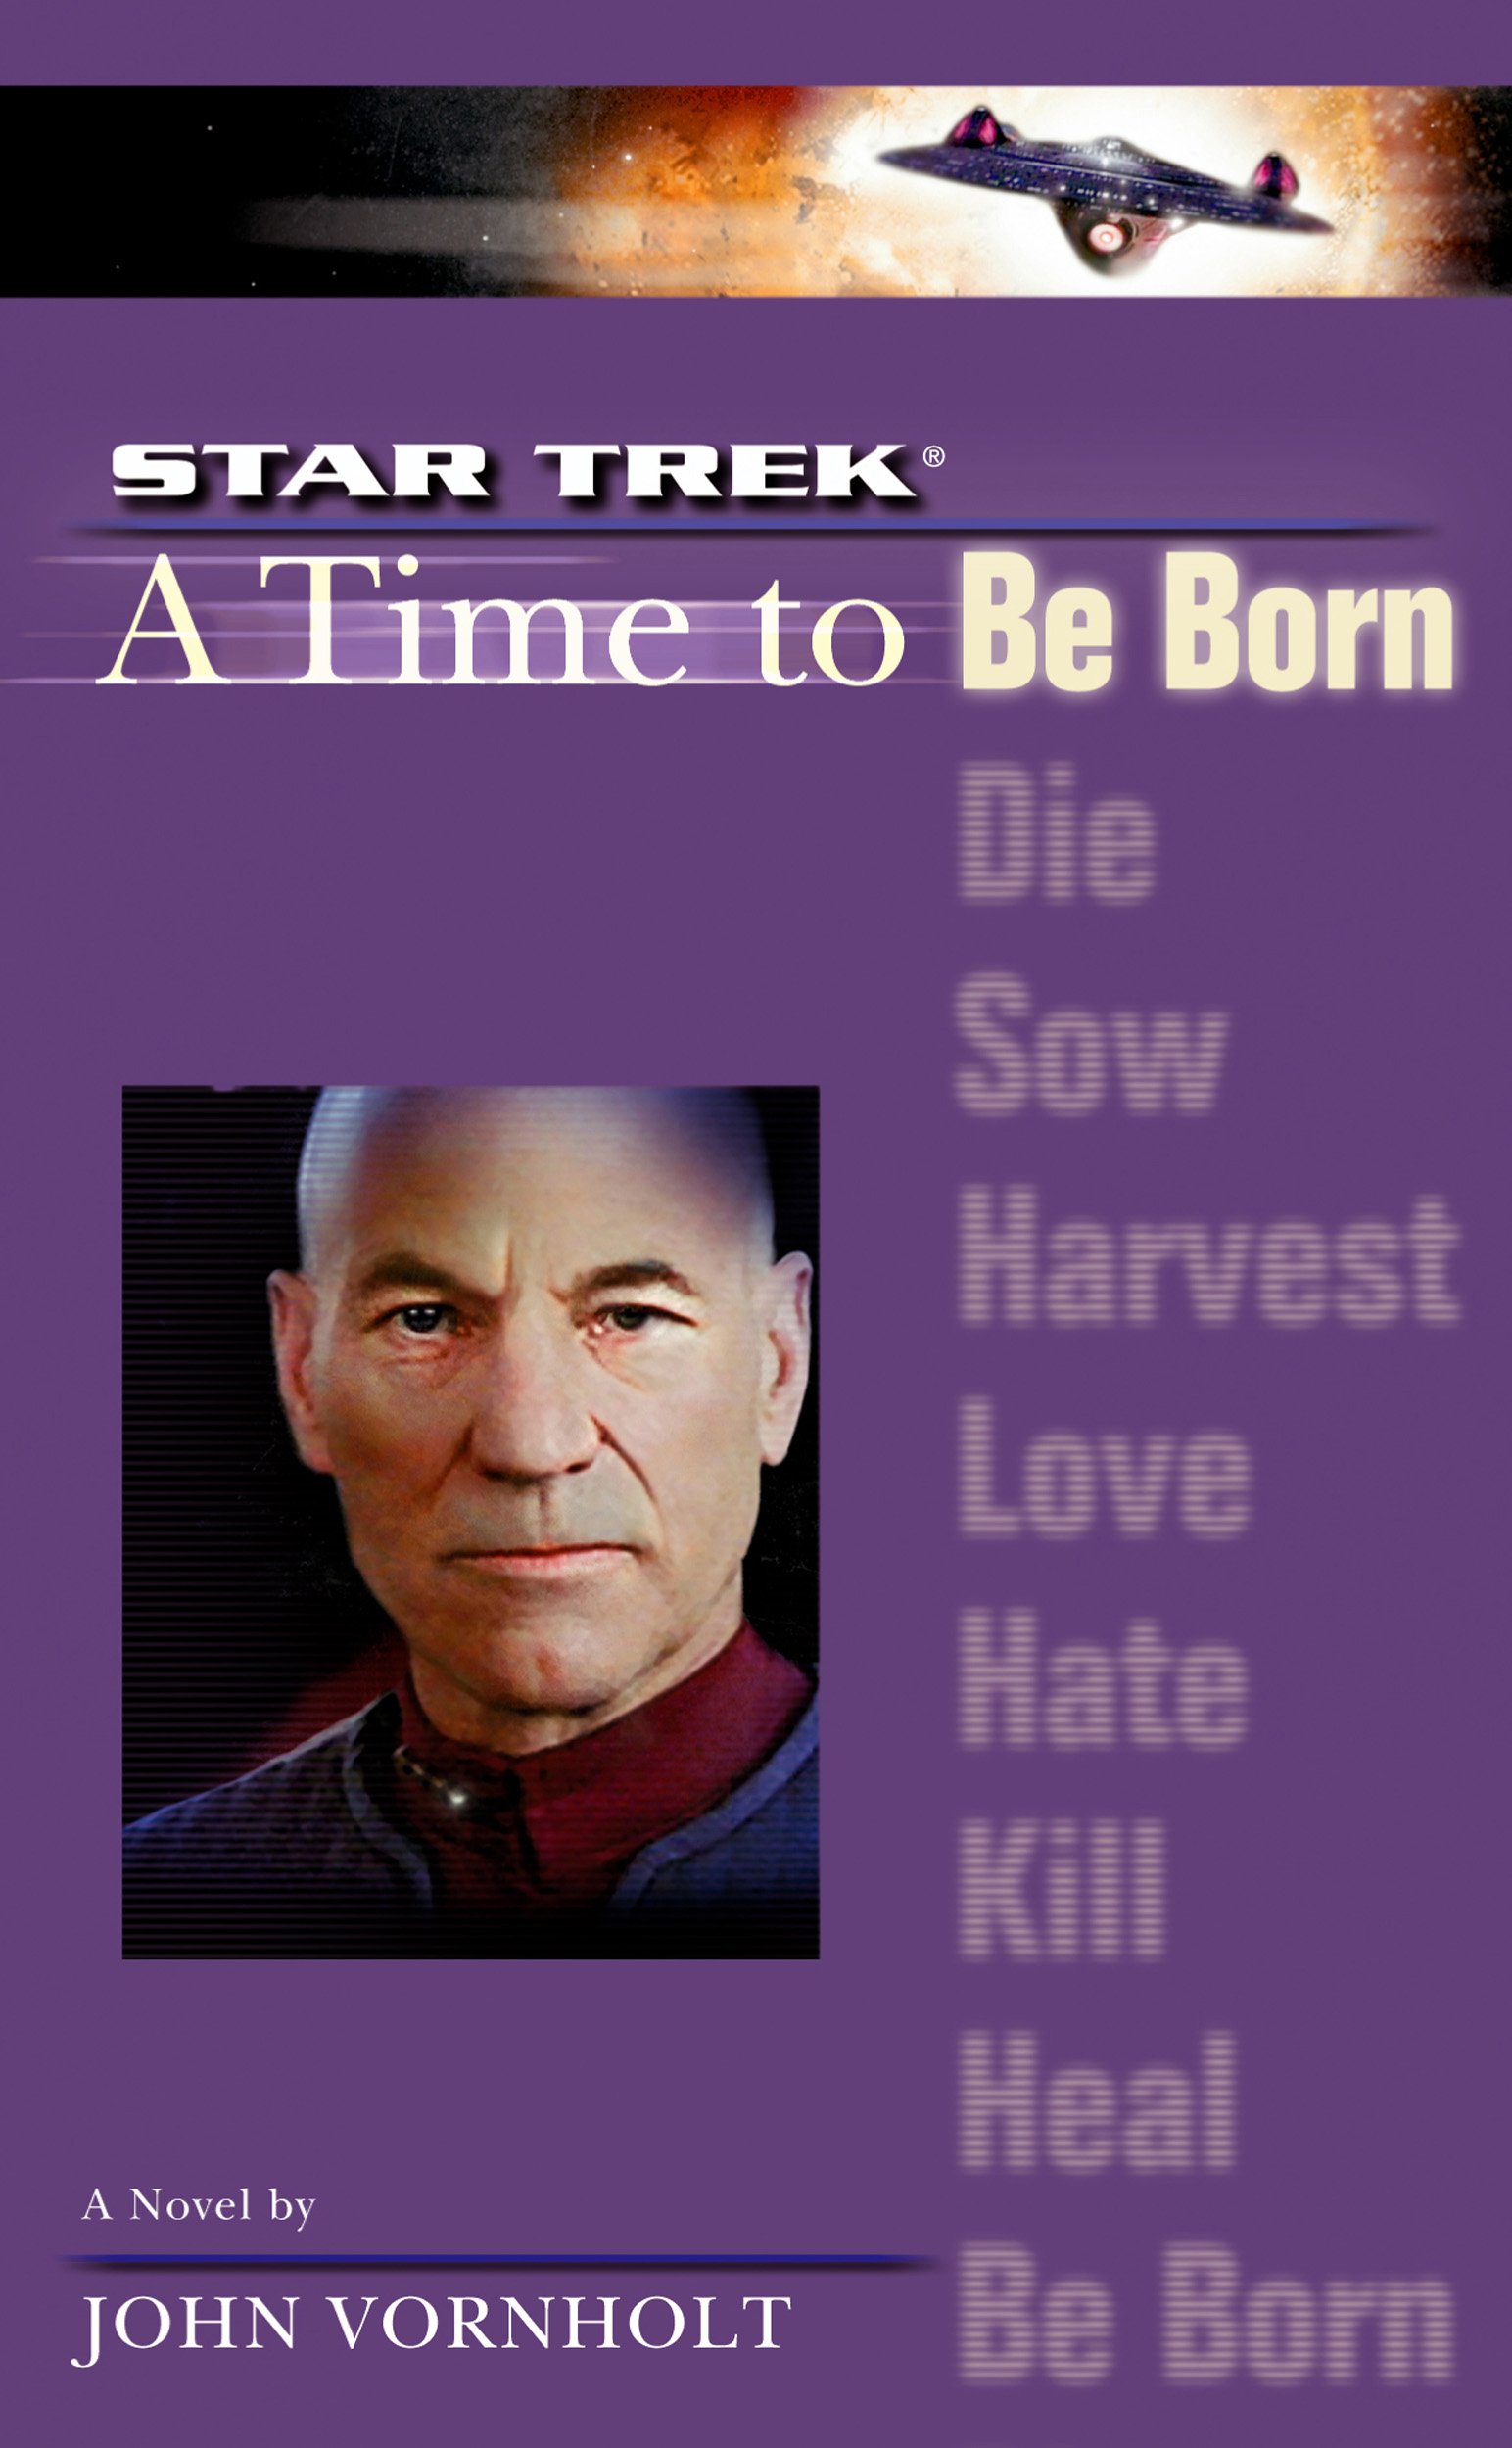 """""""Star Trek: The Next Generation: 1 A Time To Be Born"""" Review by Motionpicturescomics.com"""